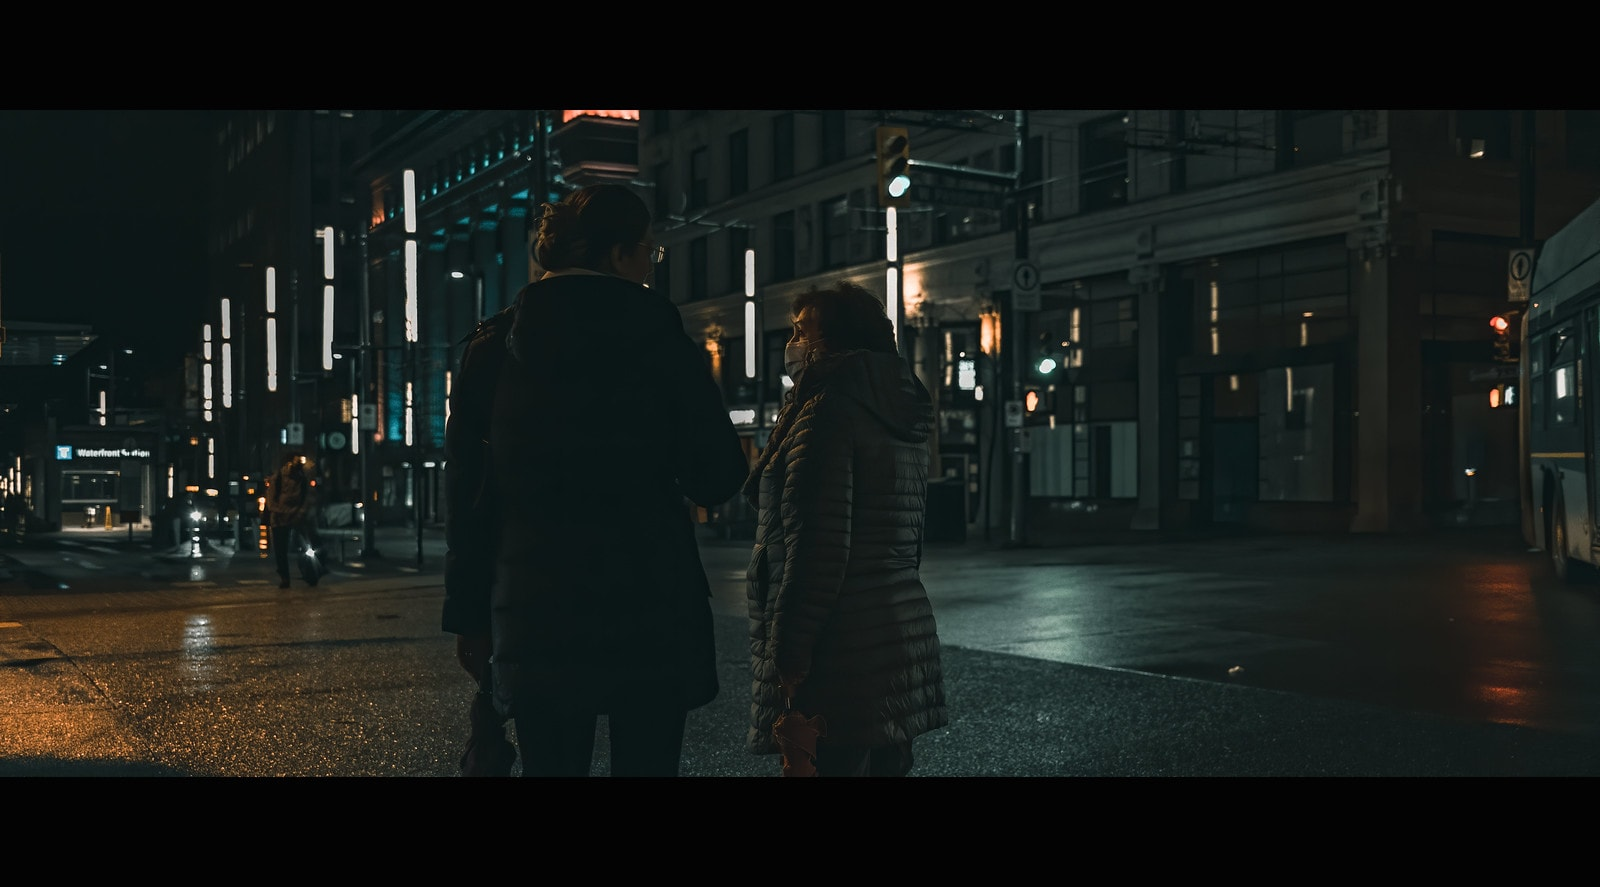 Couple strolling downtown at night